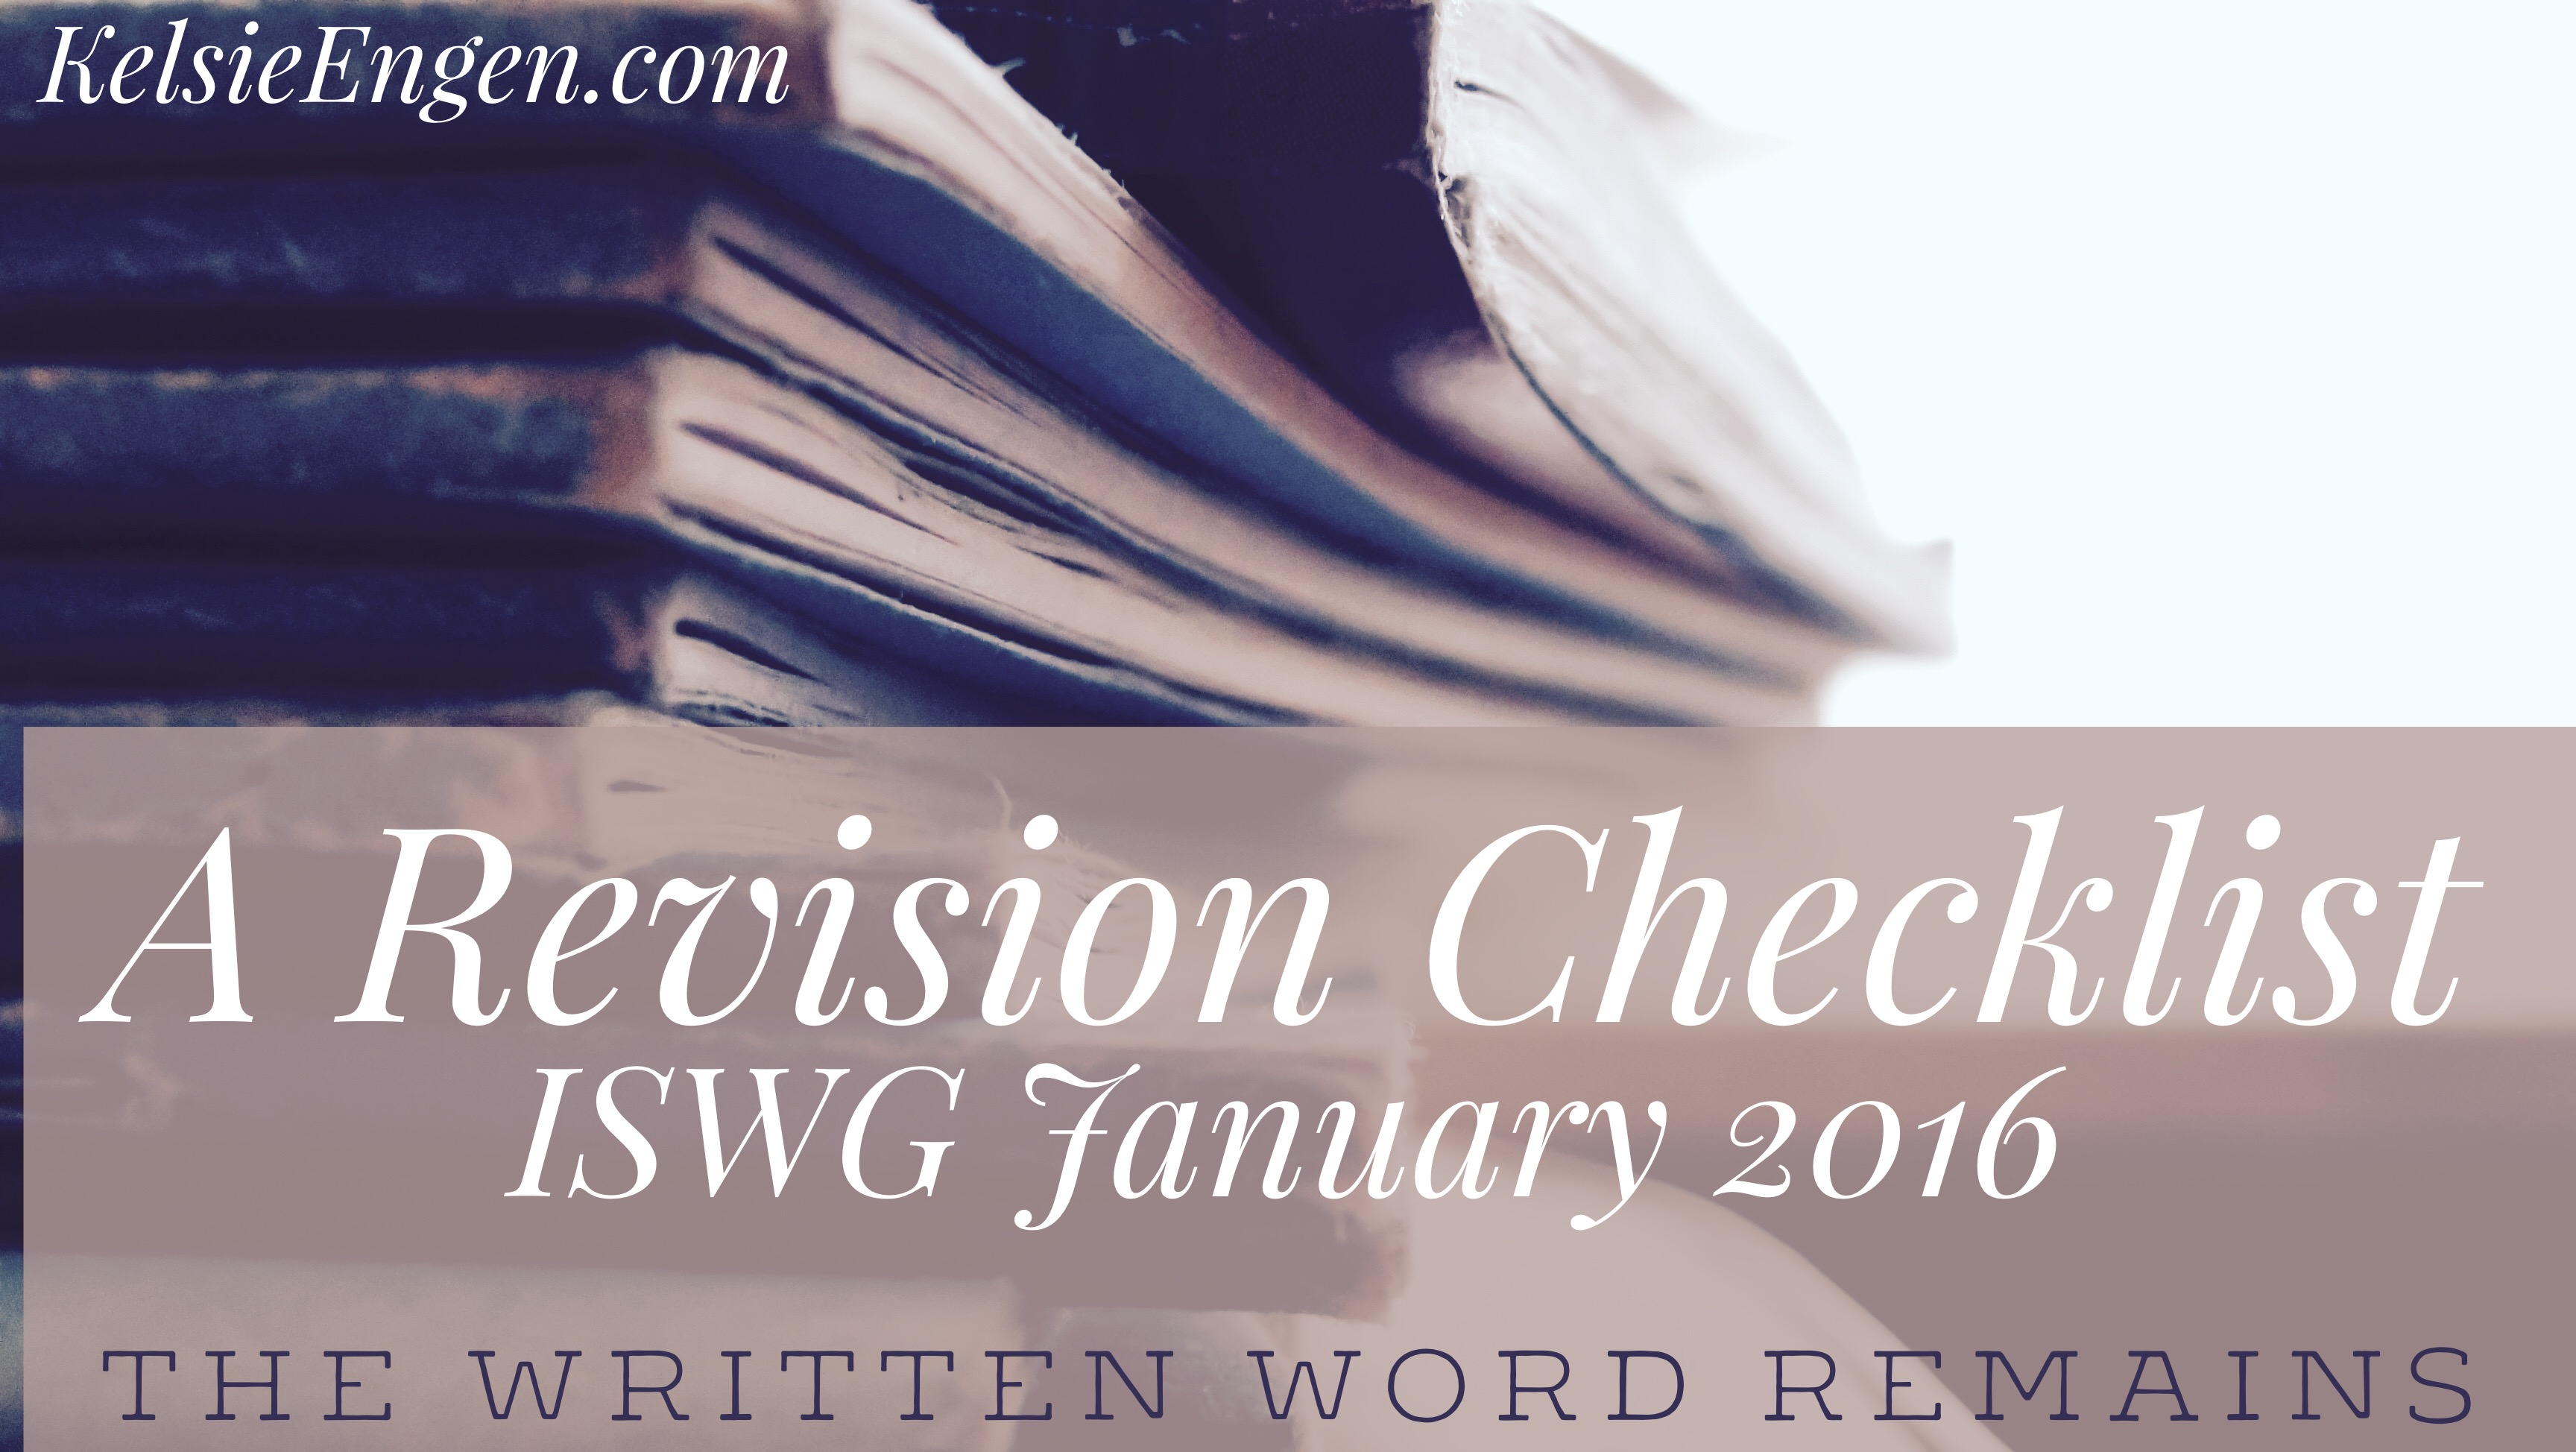 A Revision Checklist, or IWSG: January 2016